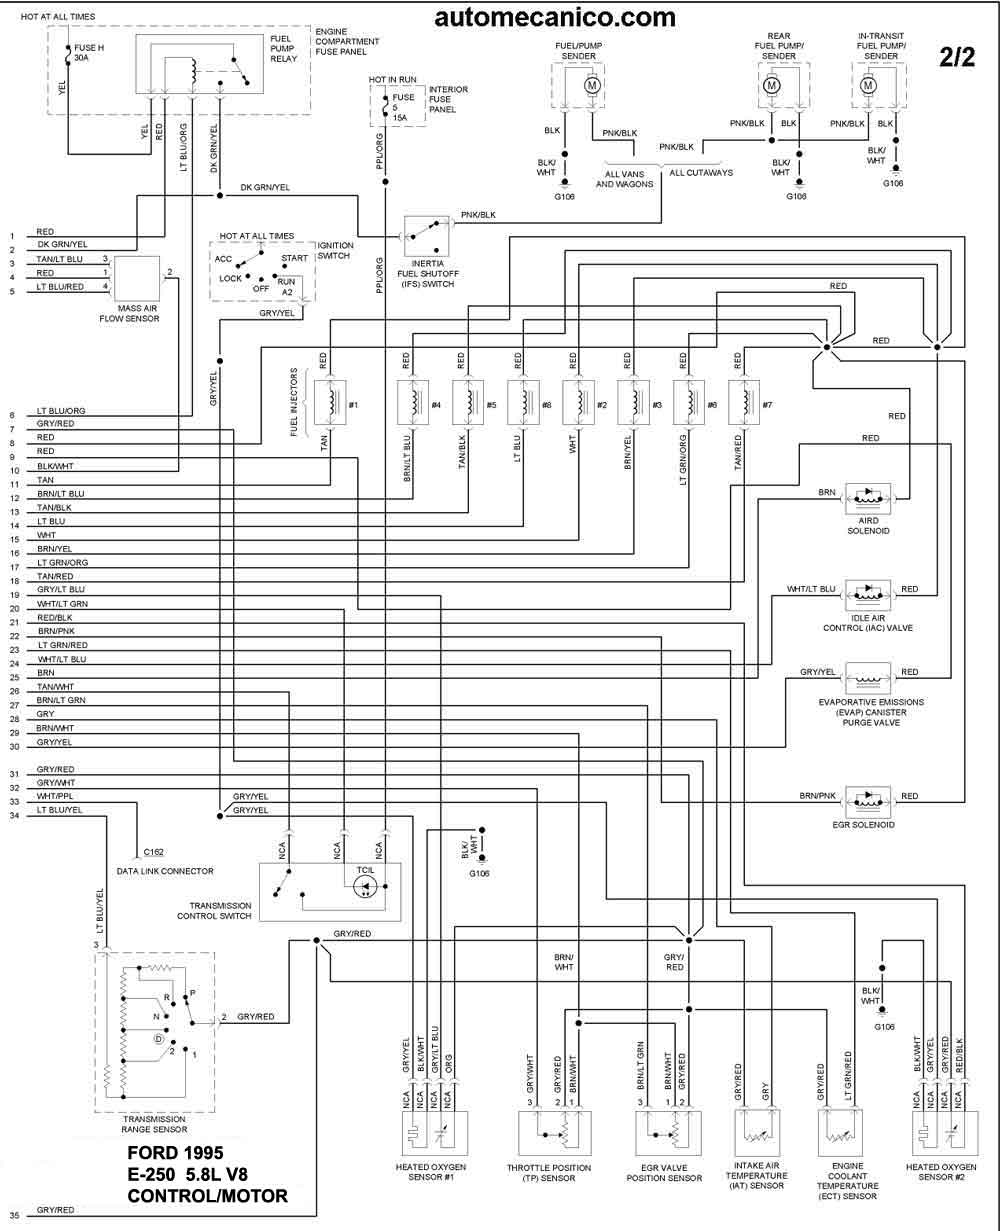 Diagrama Electrico Vw 1985 Atlantic Html